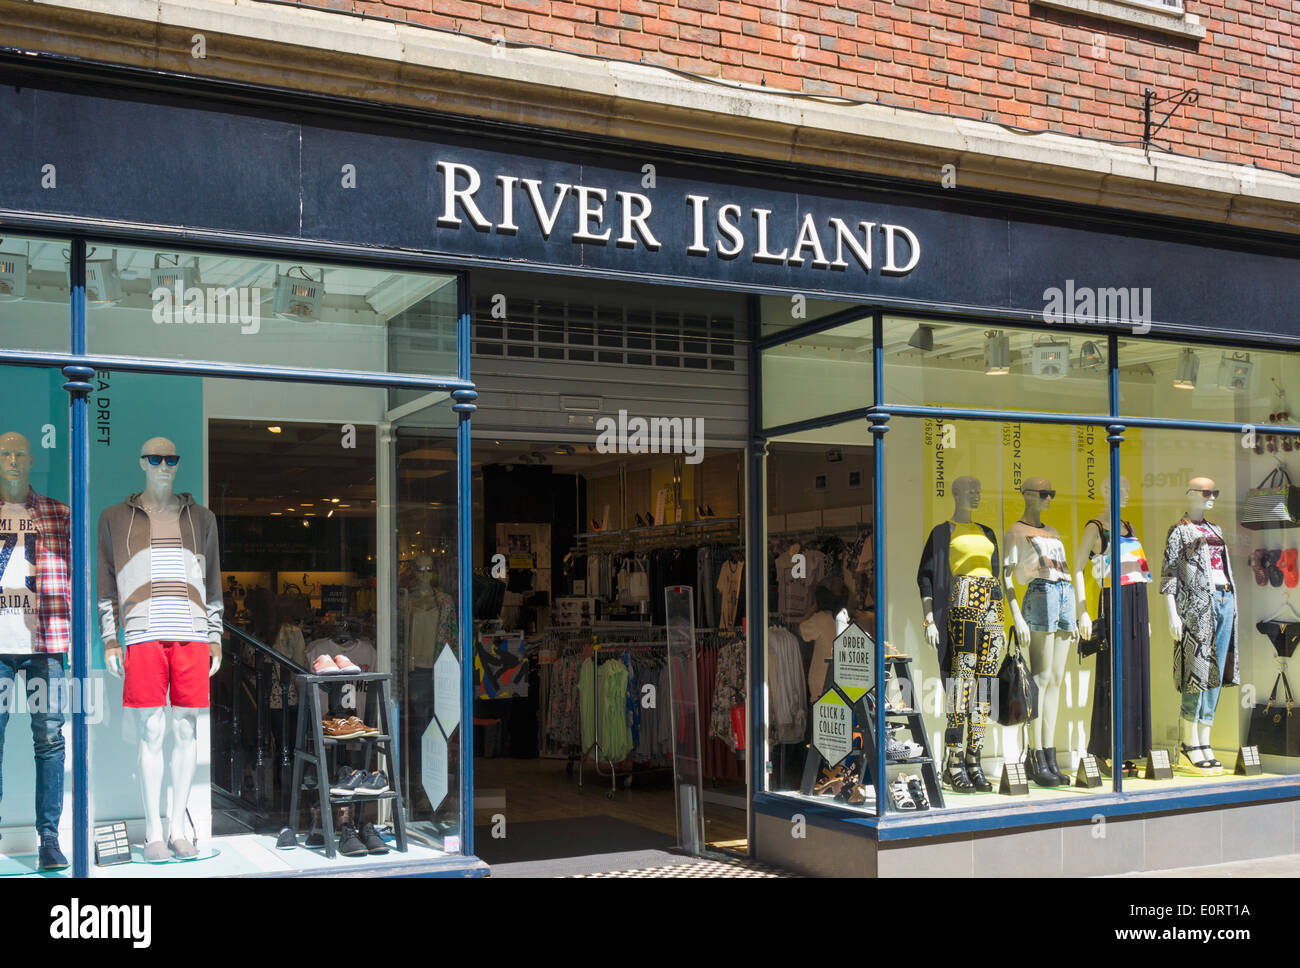 River Island clothing chain store, England, UK - Stock Image